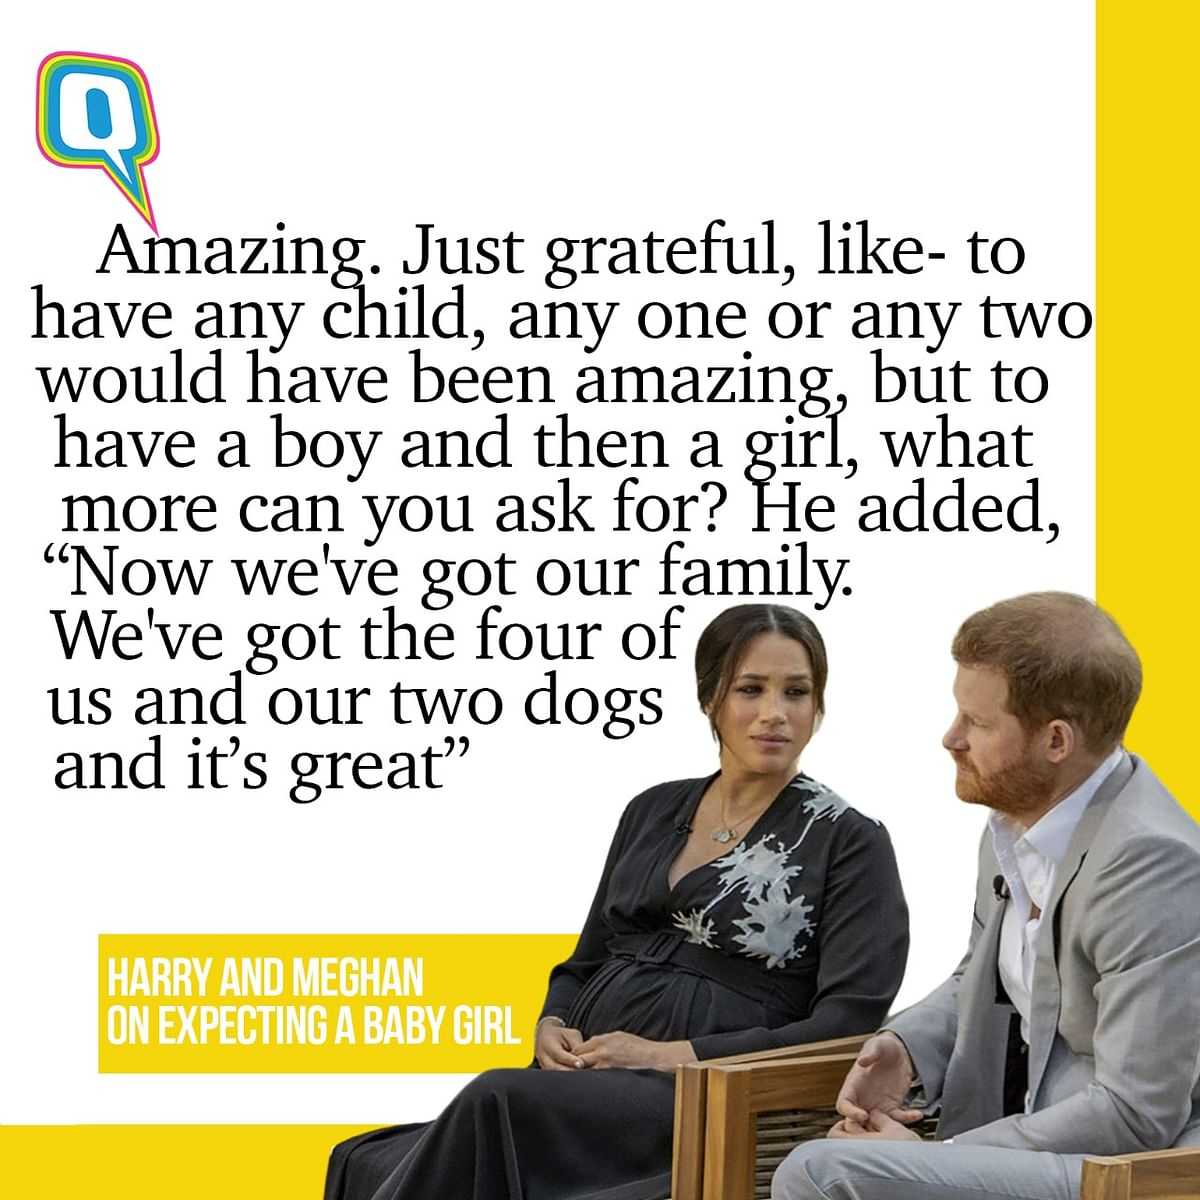 All The Key Quotes from Meghan & Harry's Interview With Oprah